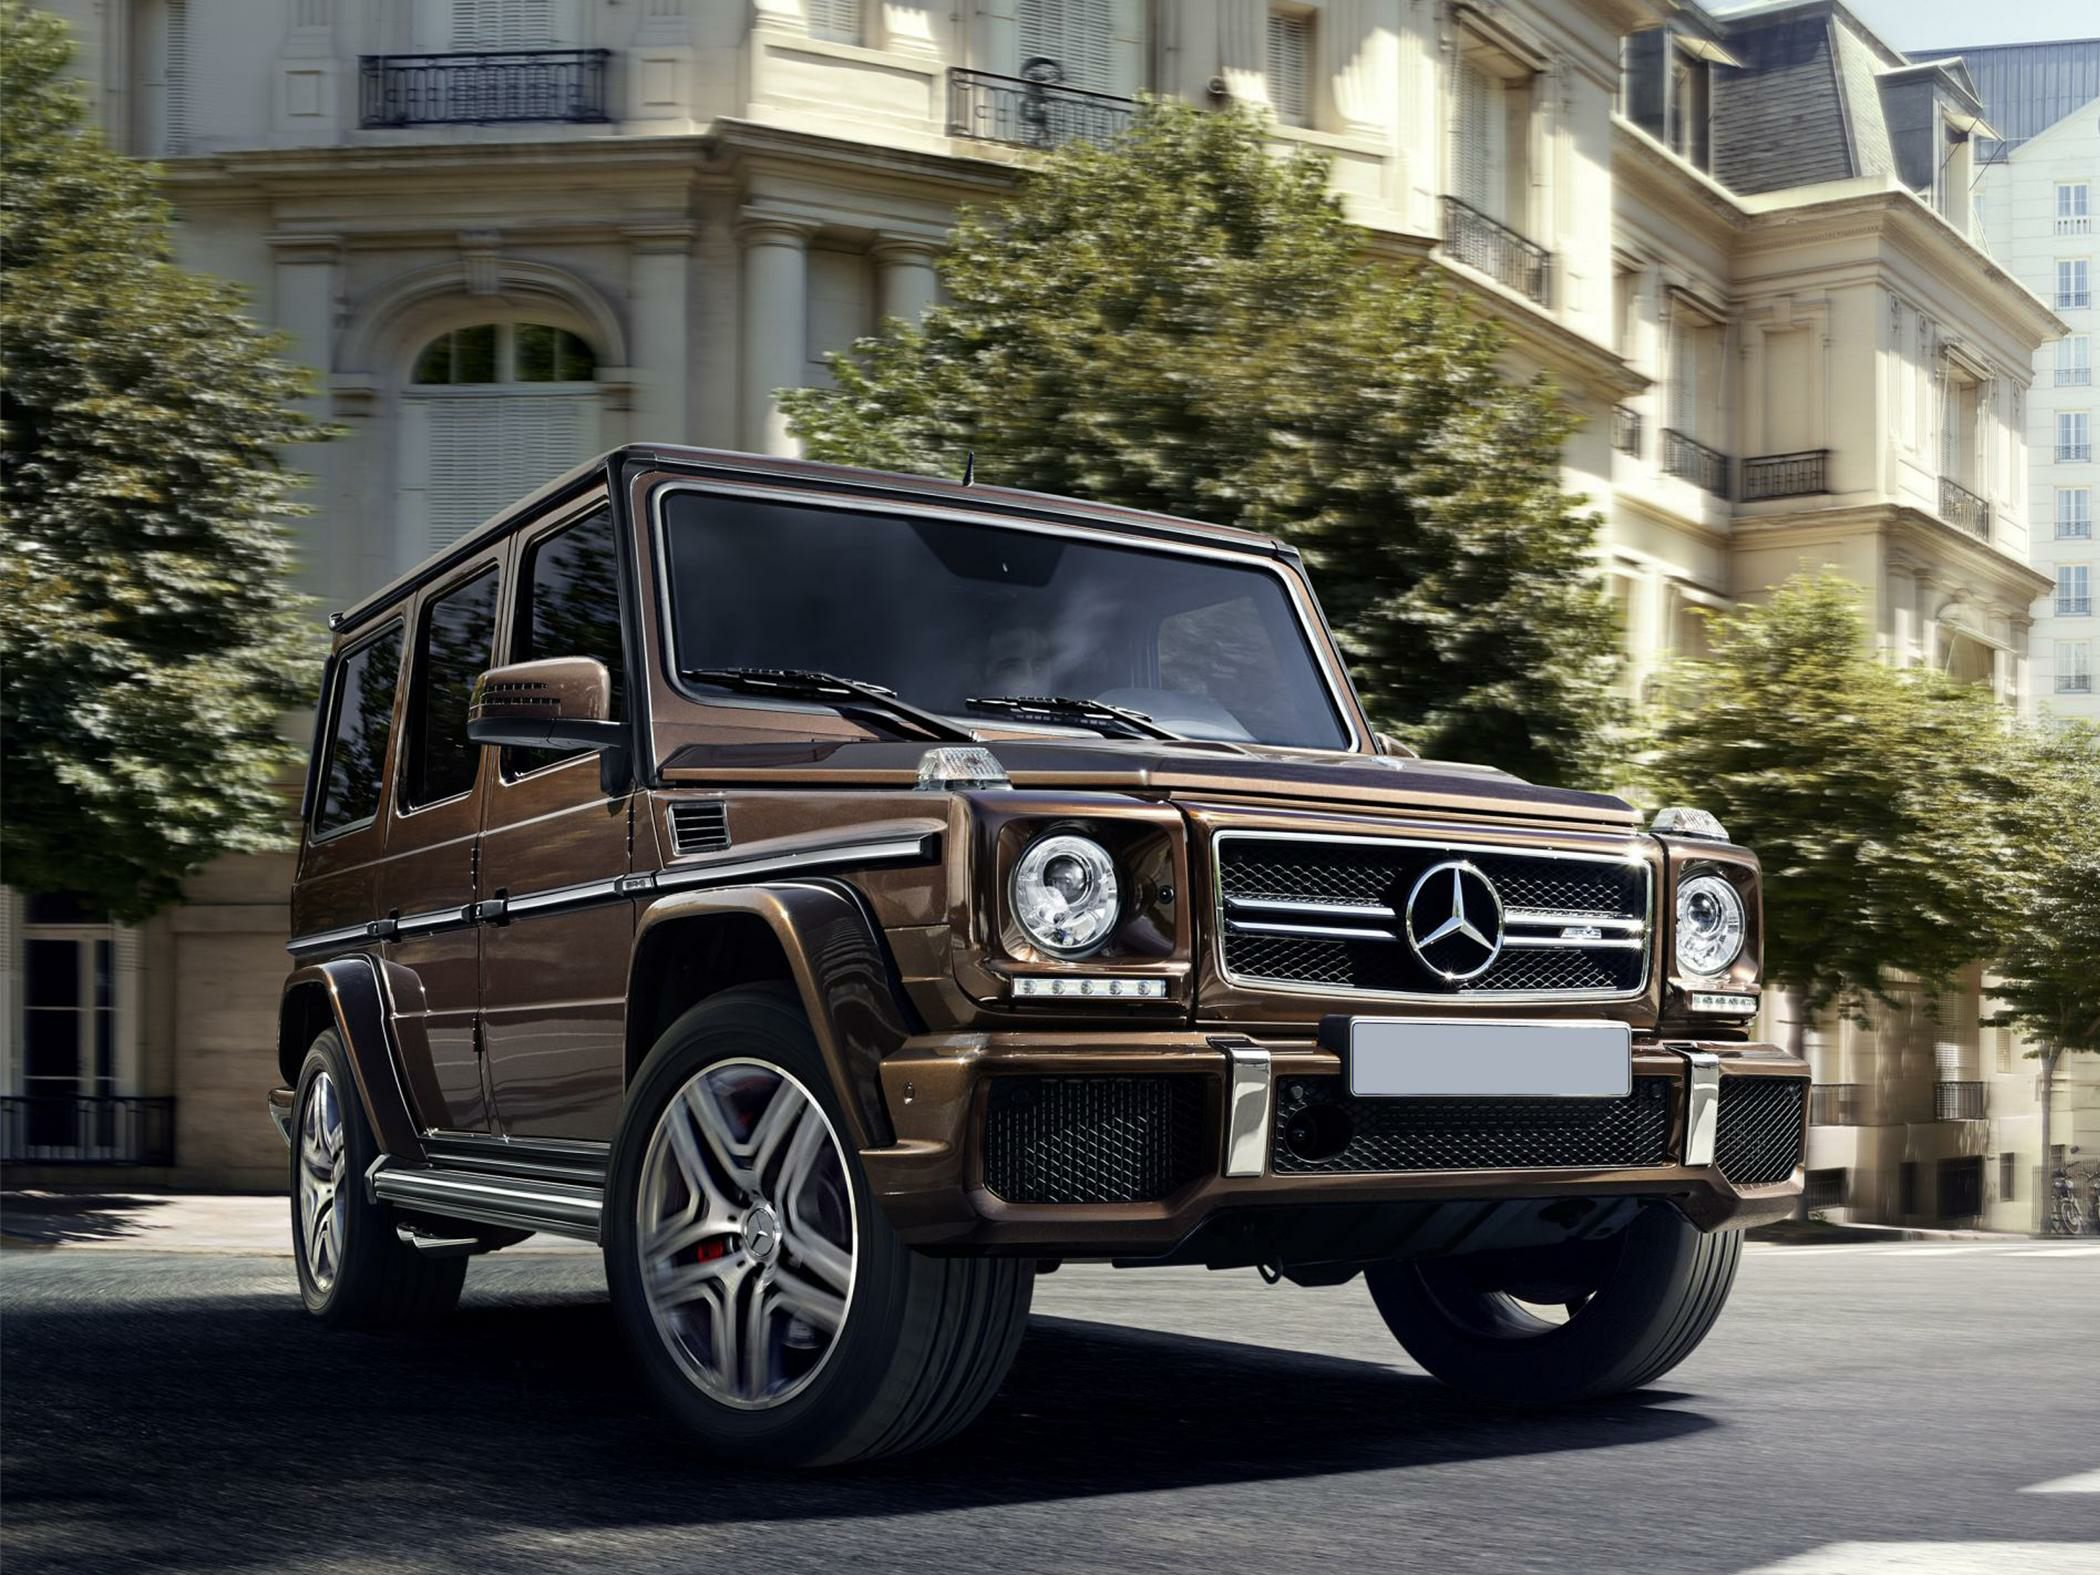 2017 mercedes benz g63 amg deals prices incentives leases overview carsdirect. Black Bedroom Furniture Sets. Home Design Ideas